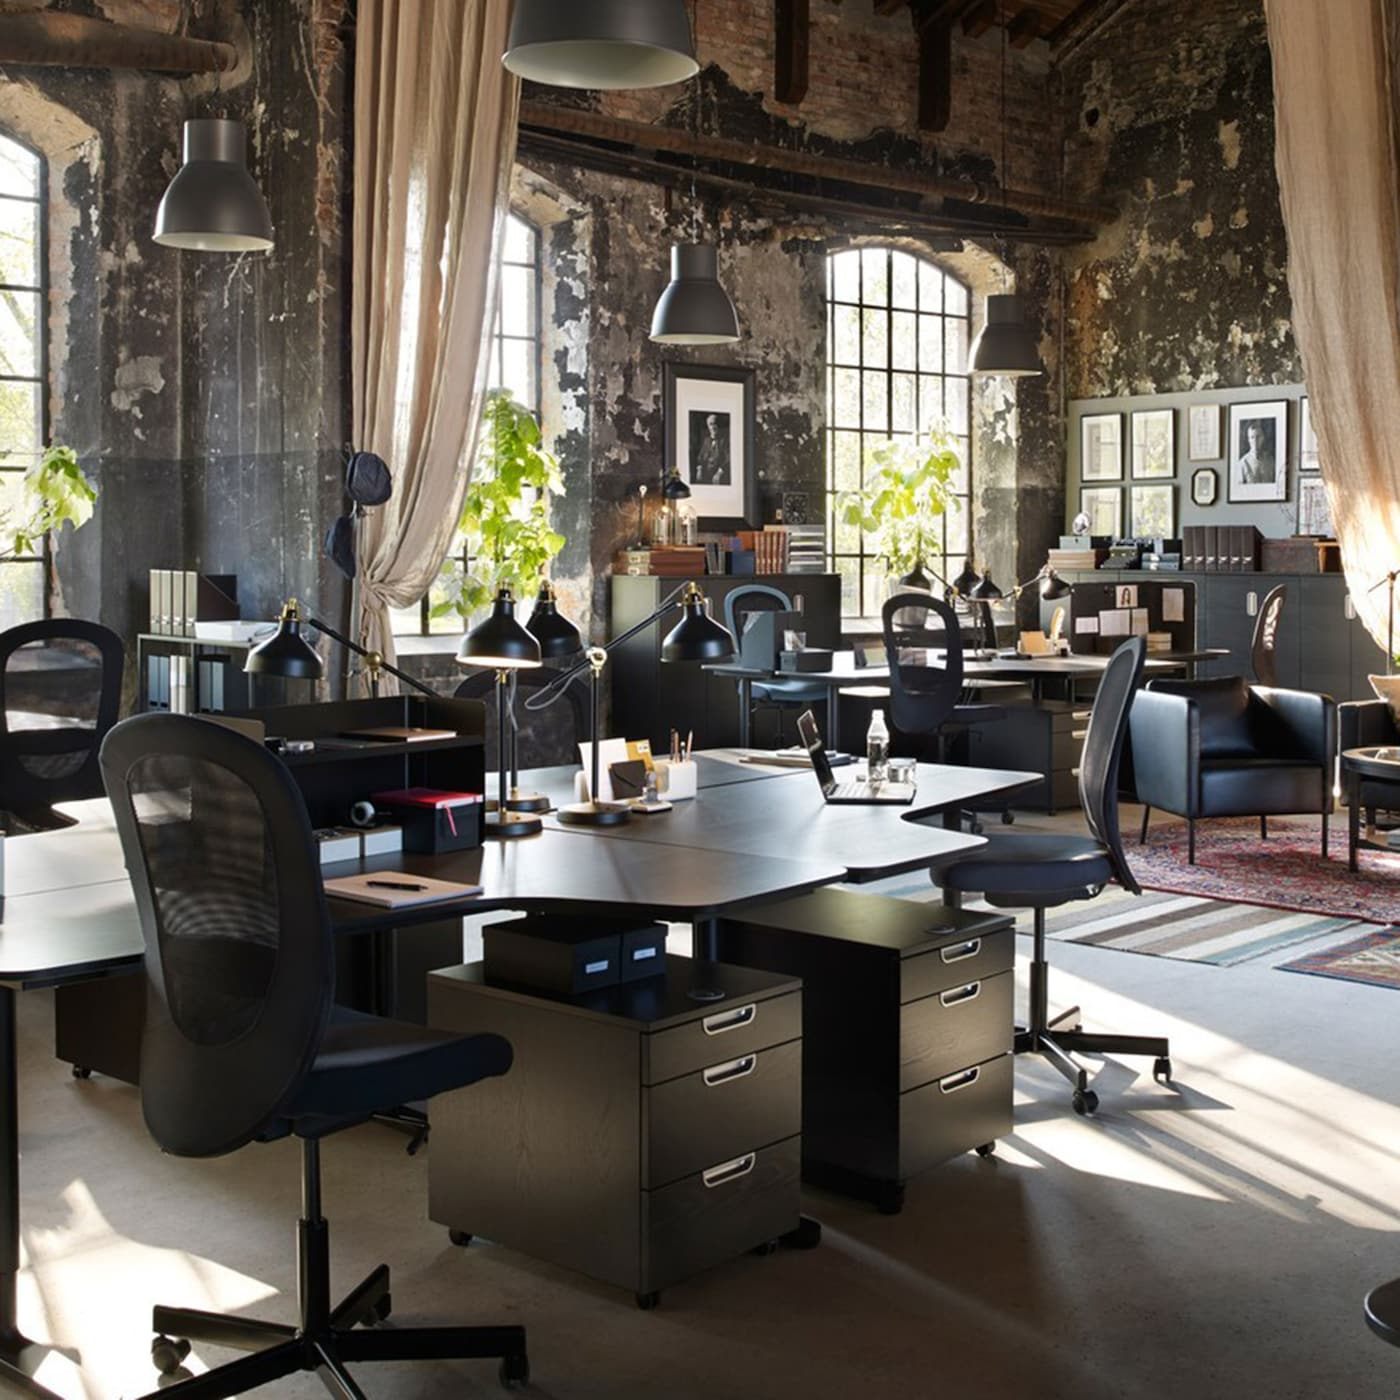 An office space with vintage room decor and modern IKEA BEKANT black work desks and FLINTAN black high-back swivel chairs.